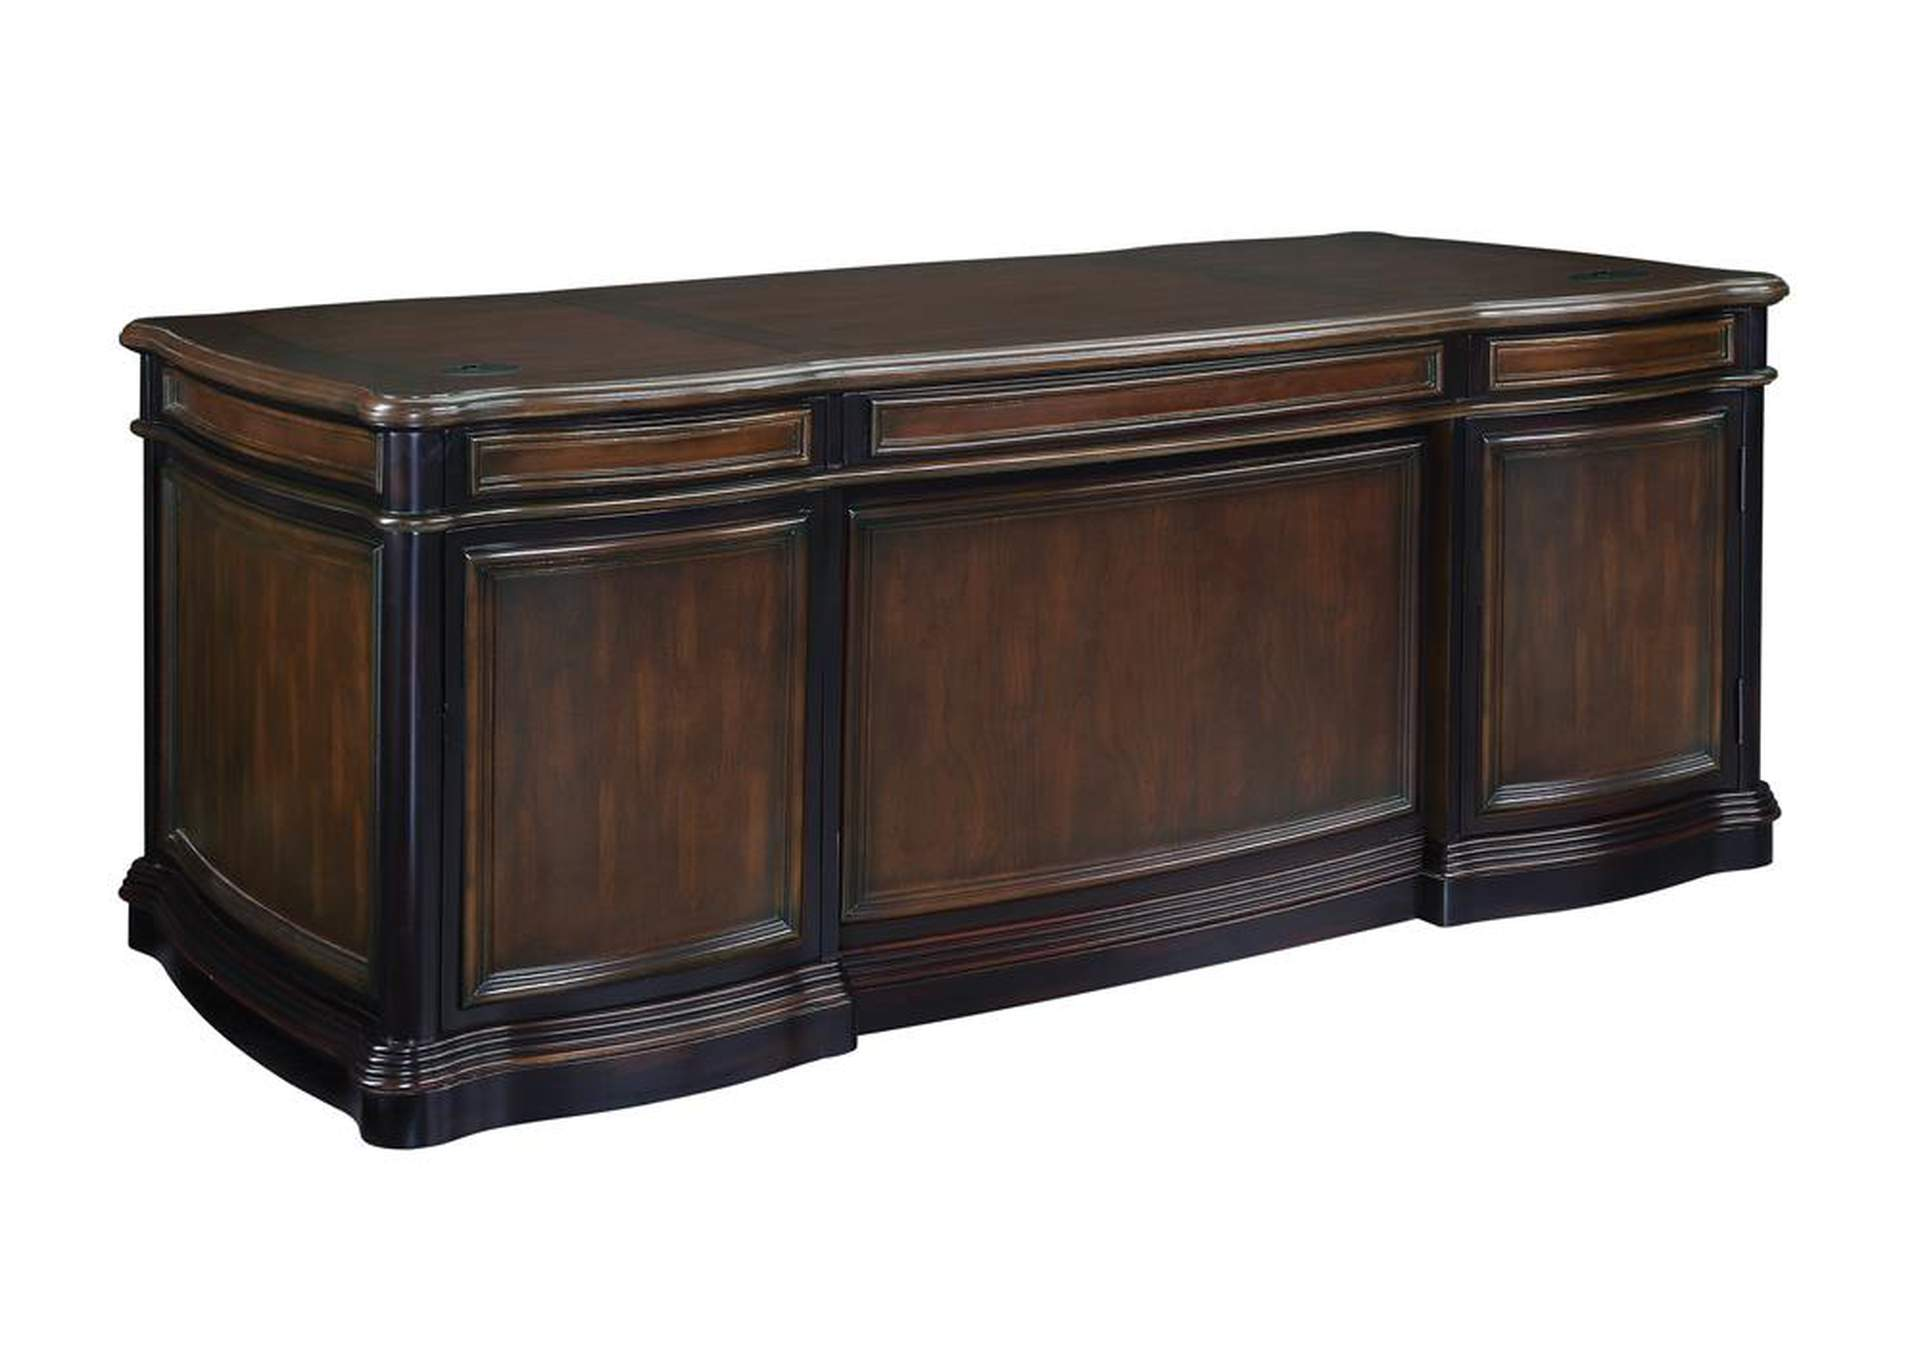 Night Rider Gorman Traditional Espresso Executive Desk,Coaster Furniture